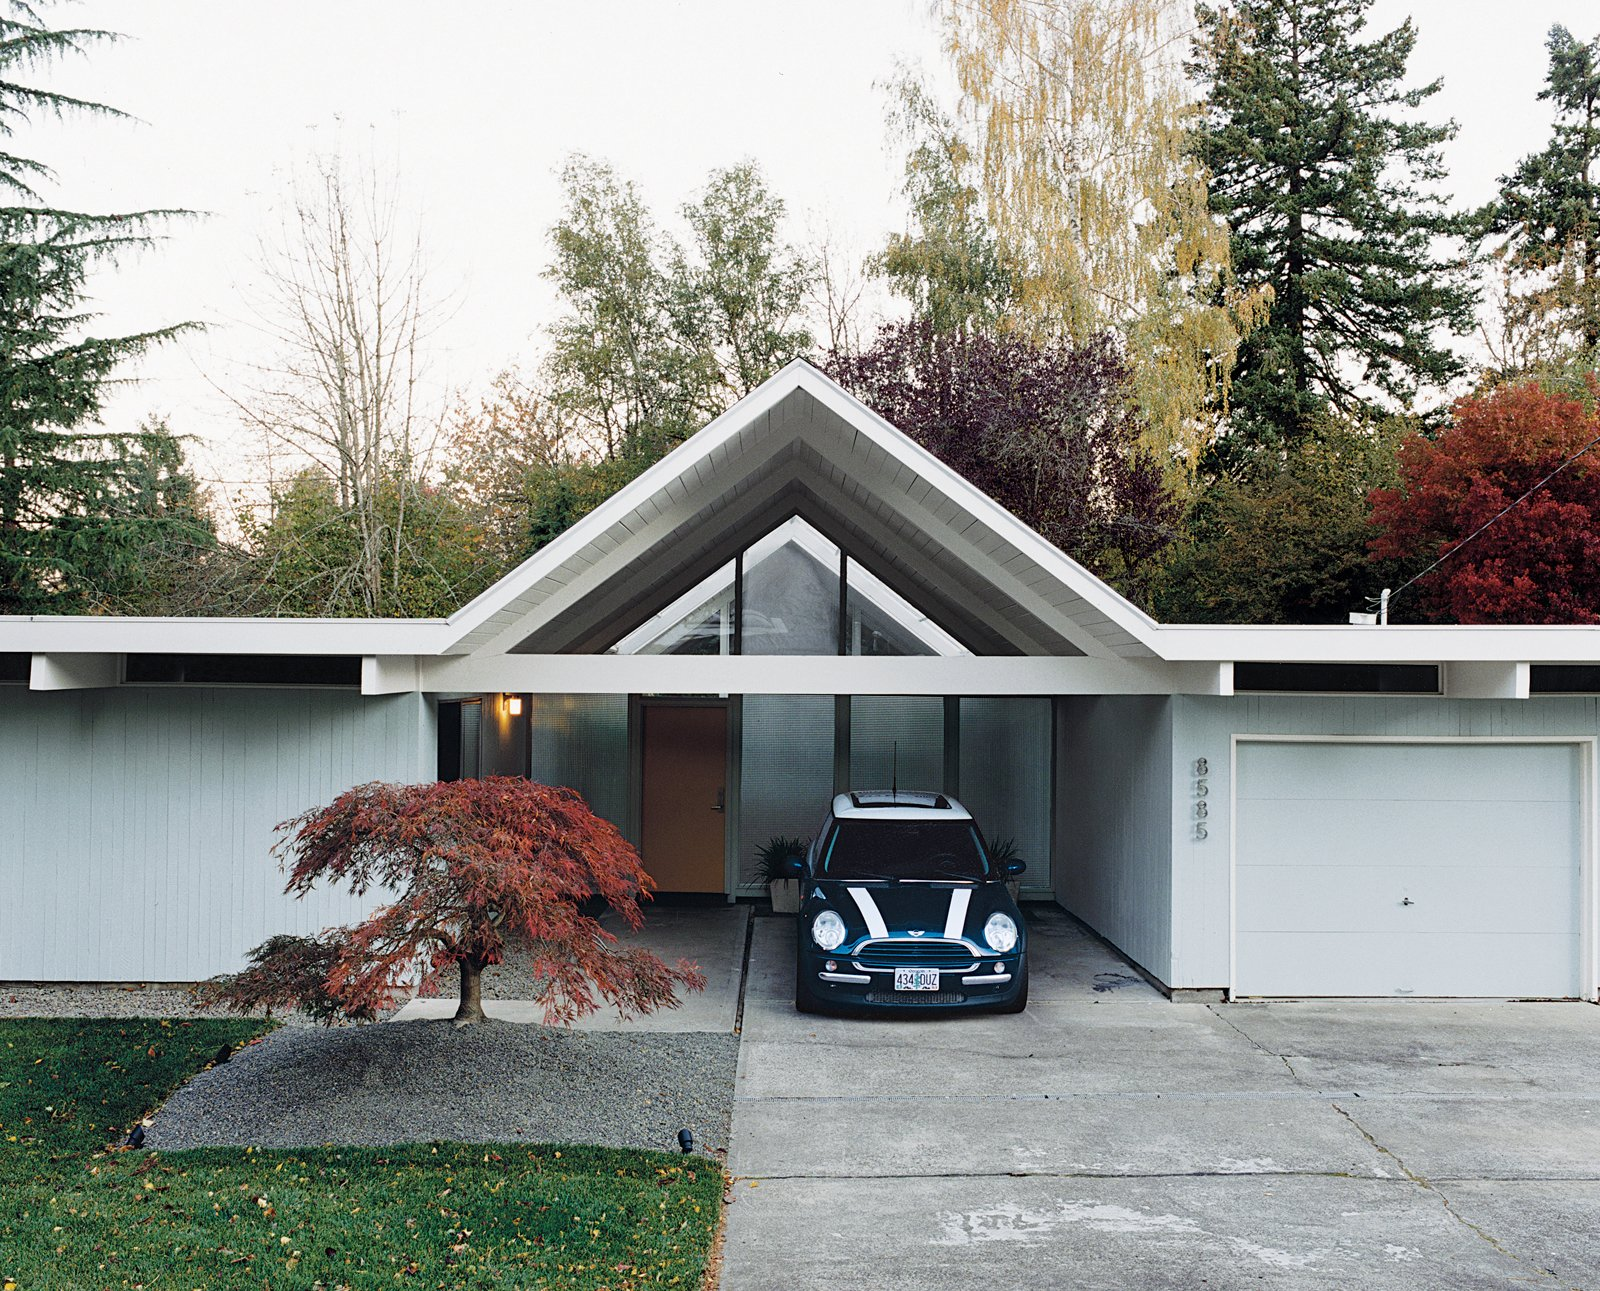 Exterior, House, Wood, and Gable When Jennifer and Mattias Segerholt decided to move to Portland after five years in Los Angeles, a shared climate-based trepidation shaped their real estate search.  Best Exterior Wood Gable Photos from A Mid-Century Modern Home in Southwest Portland